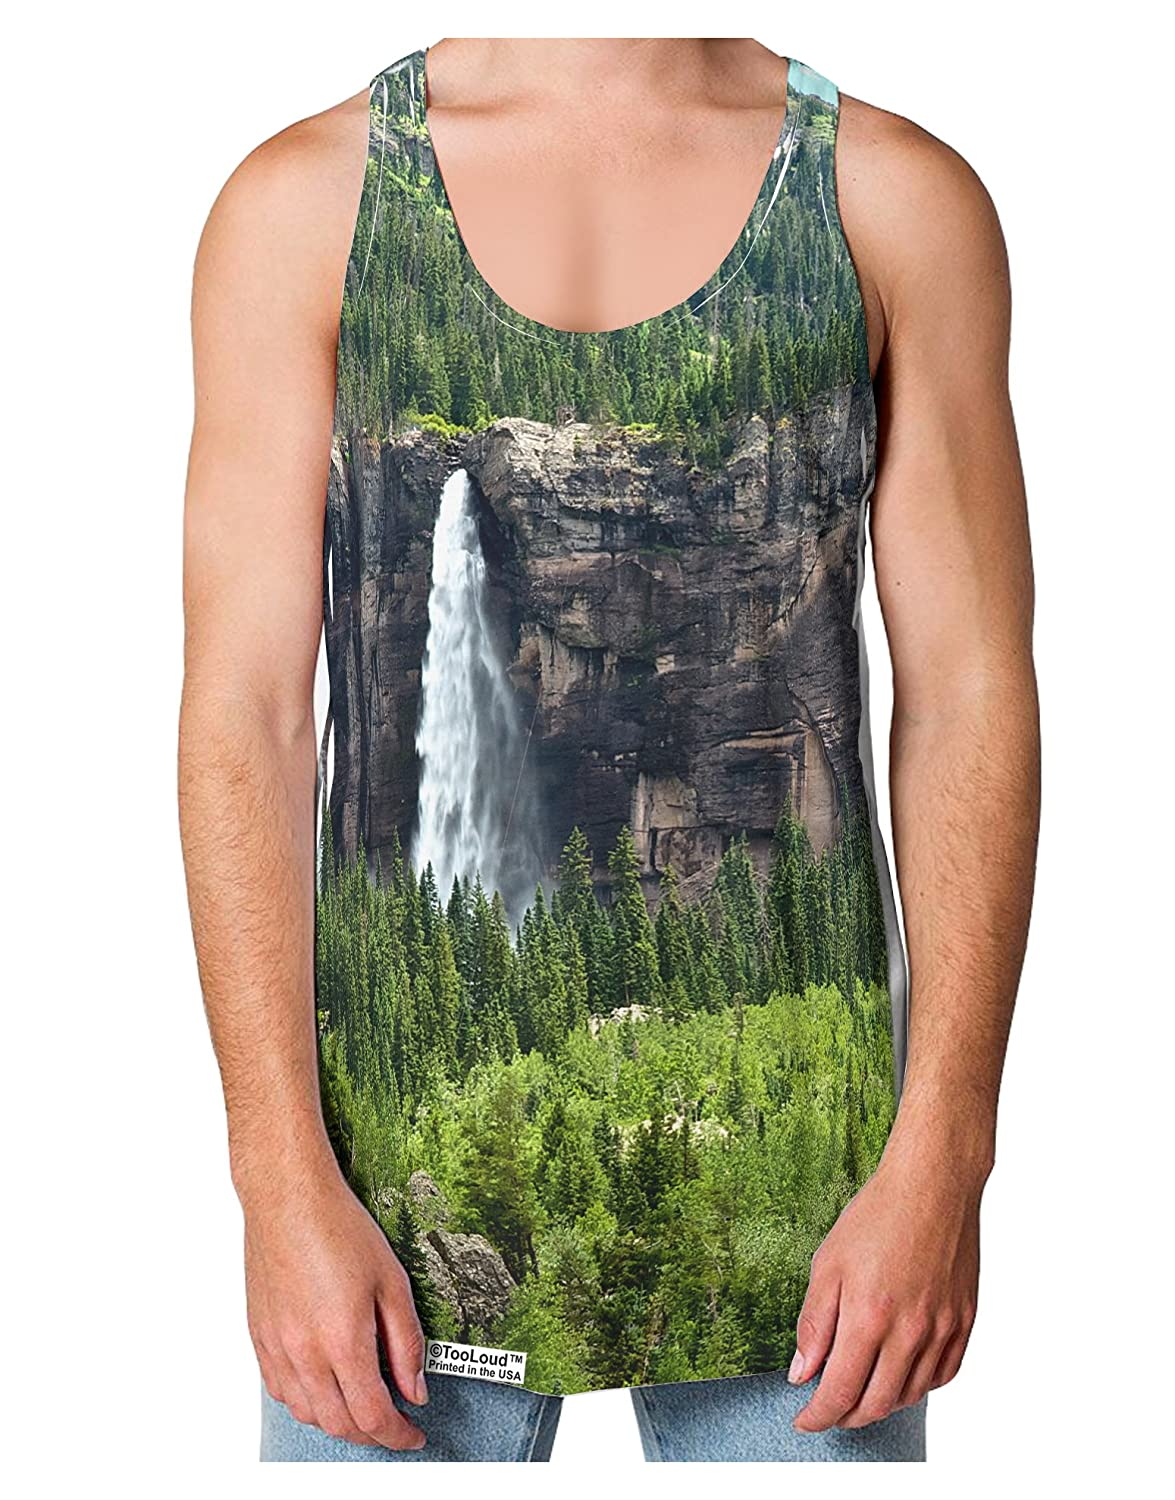 Cliffs Loose Tank Top Single Side All Over Print TooLoud Nature Beauty